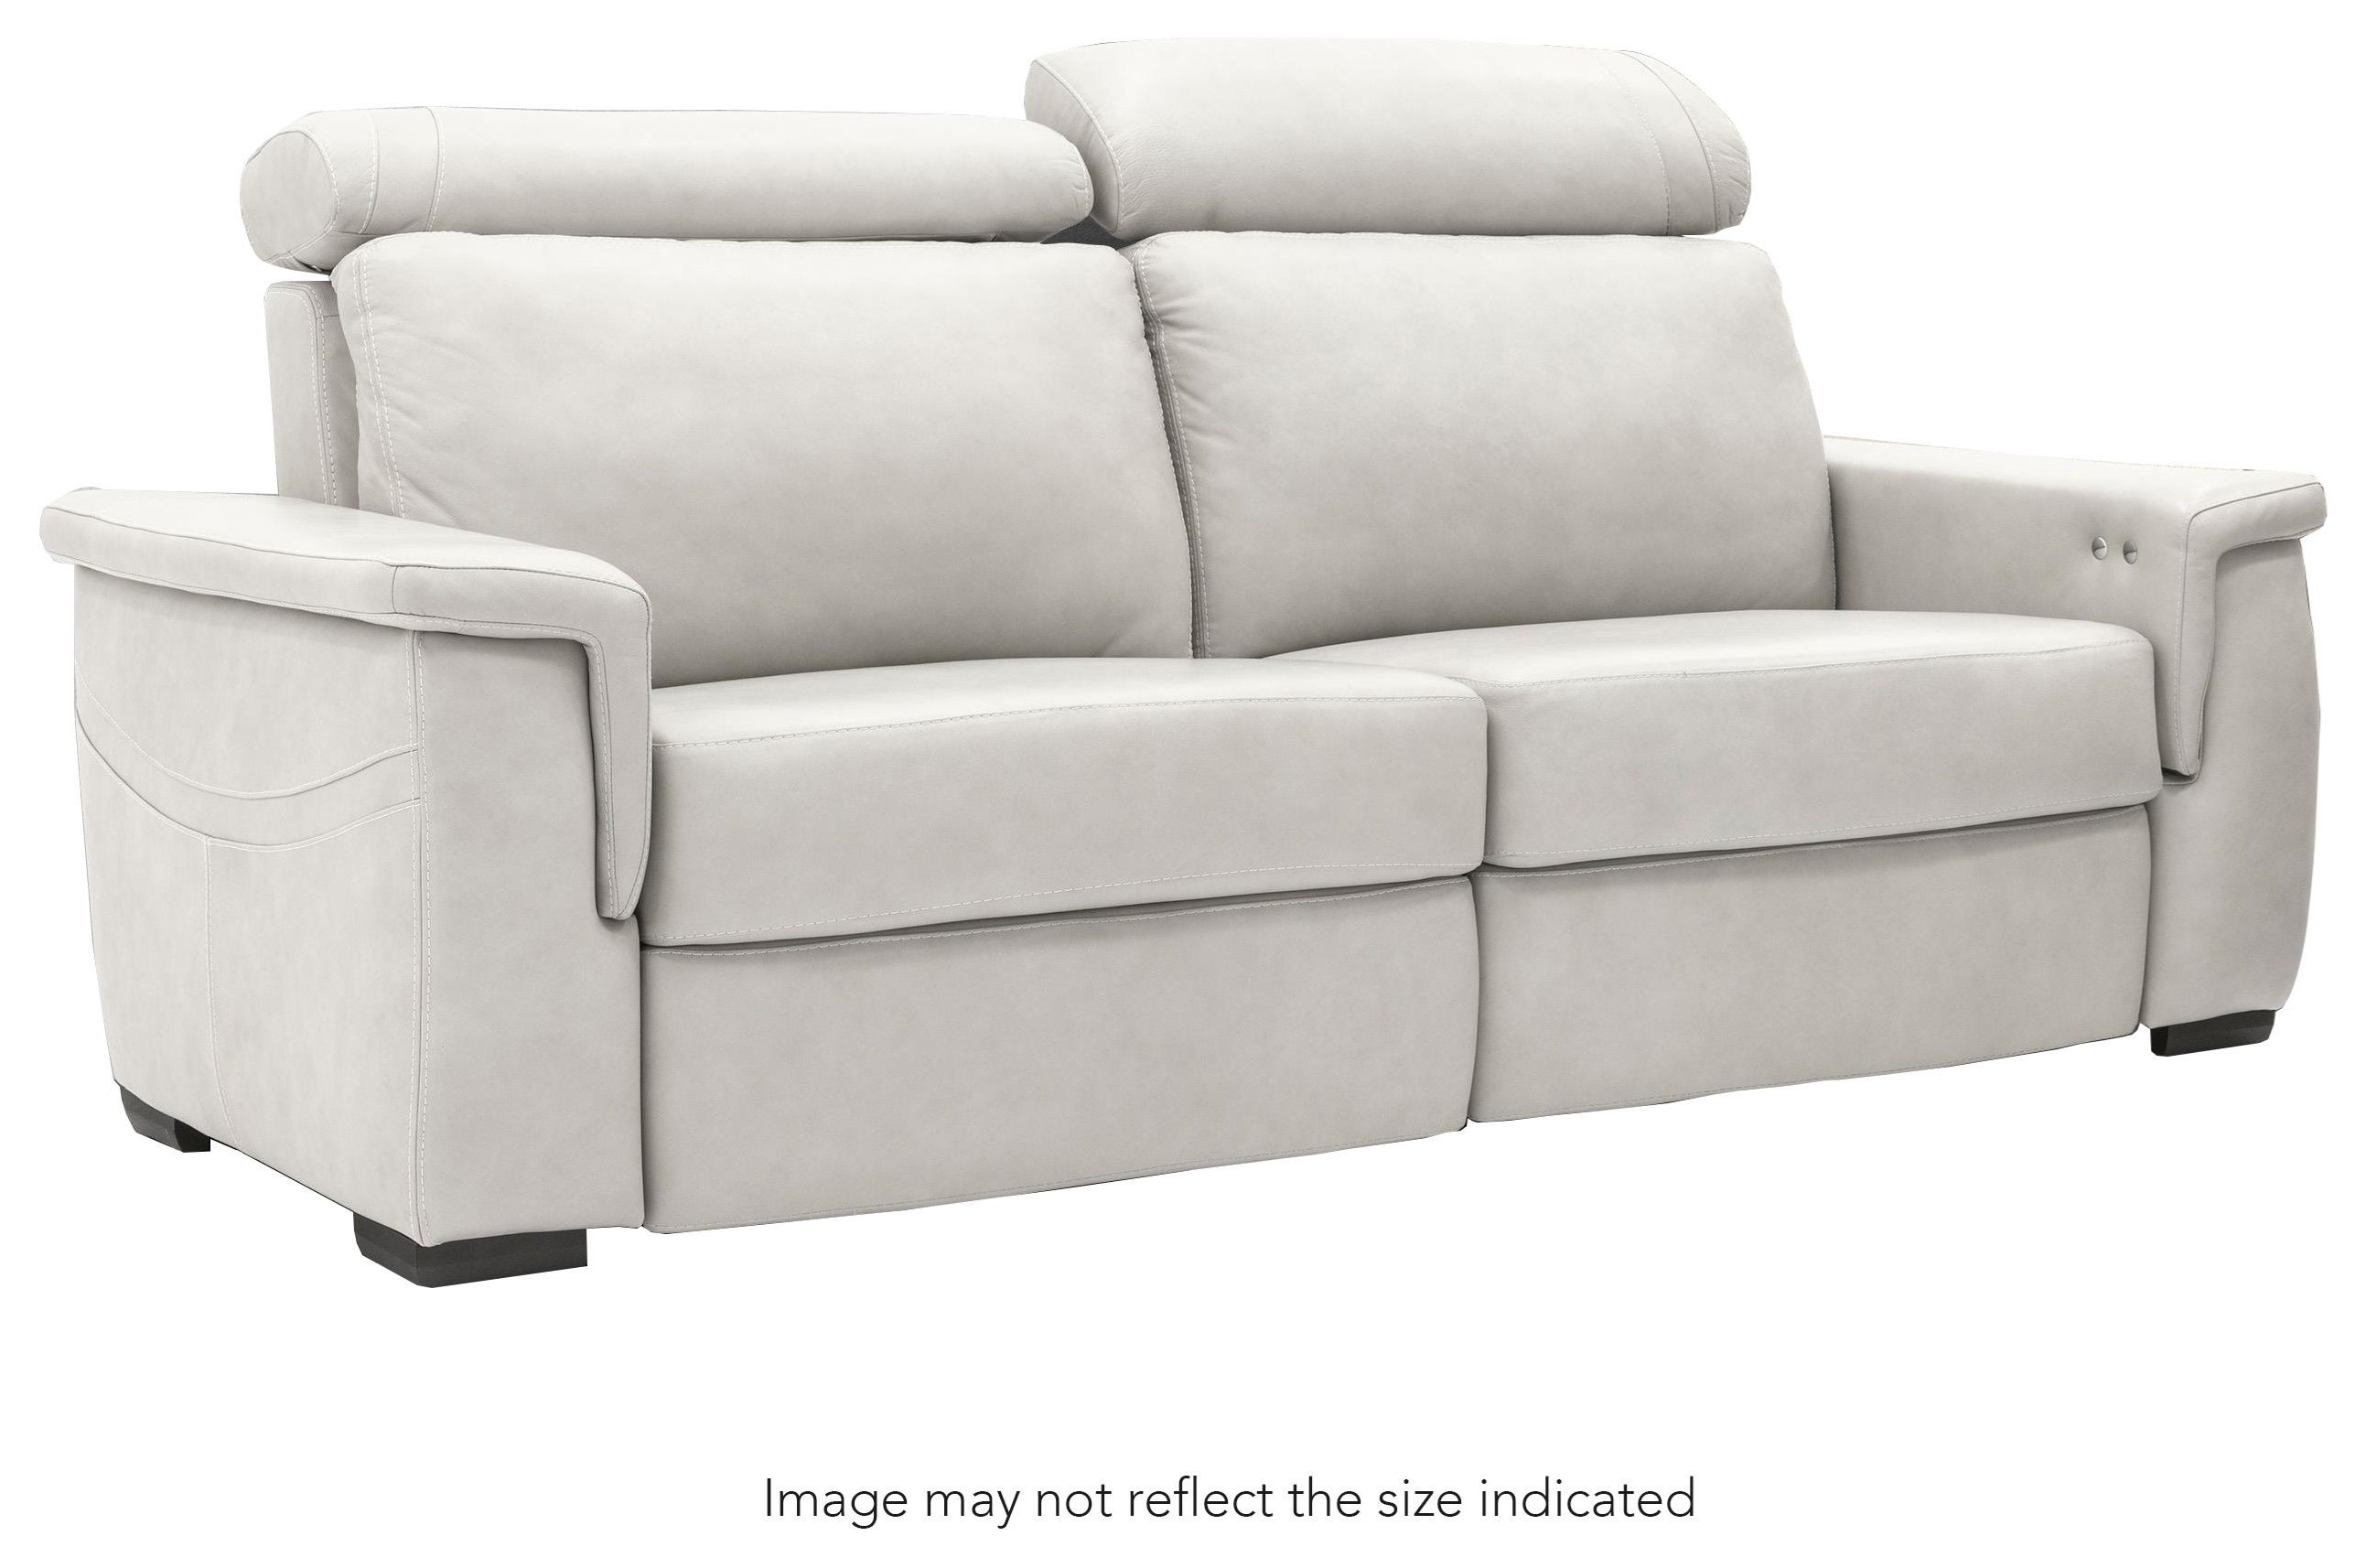 3785 Power Recliner Loveseat, All Lerther by Fornirama at Upper Room Home Furnishings